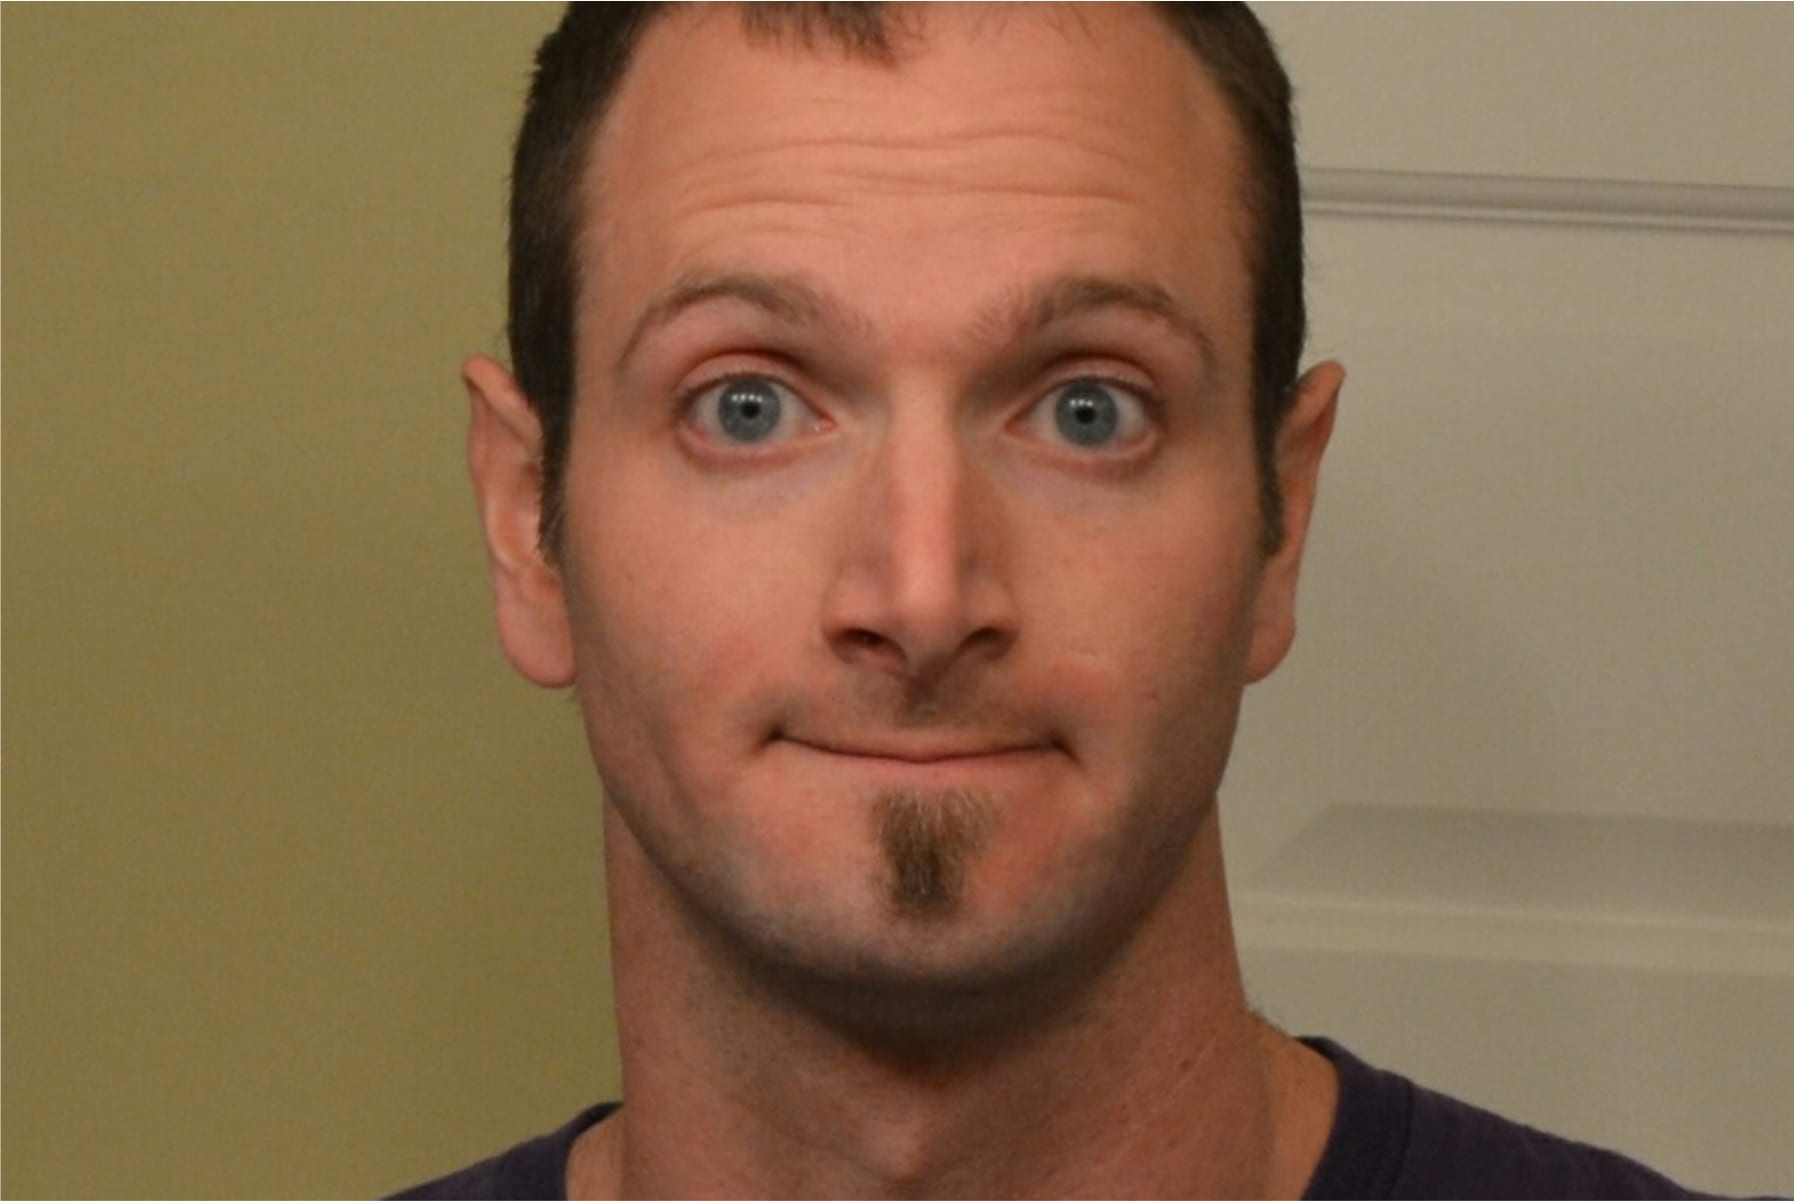 How to get a Soul Patch Beard